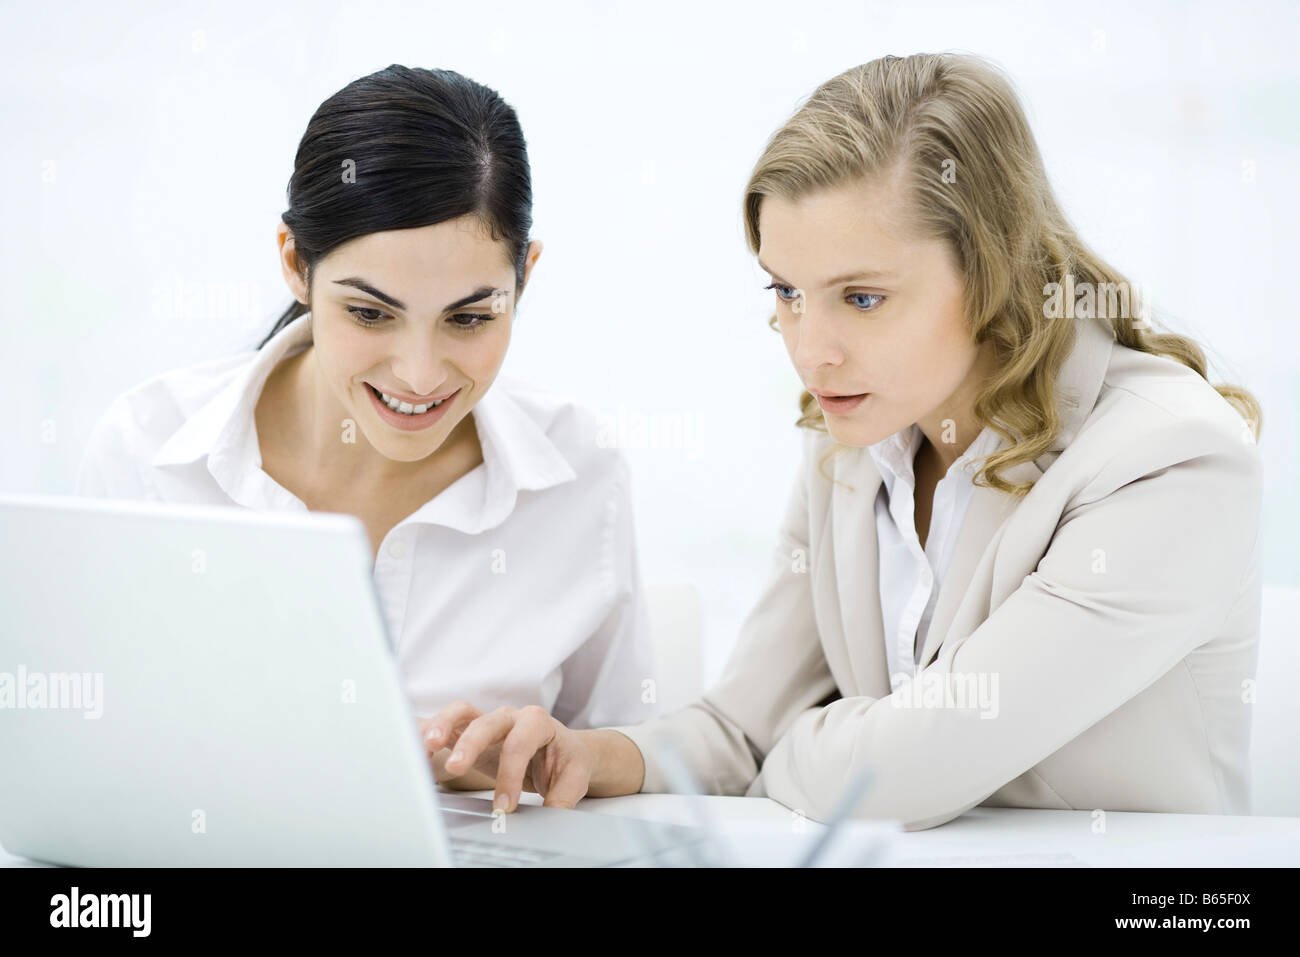 Professional women looking at laptop computer together, smiling Photo Stock